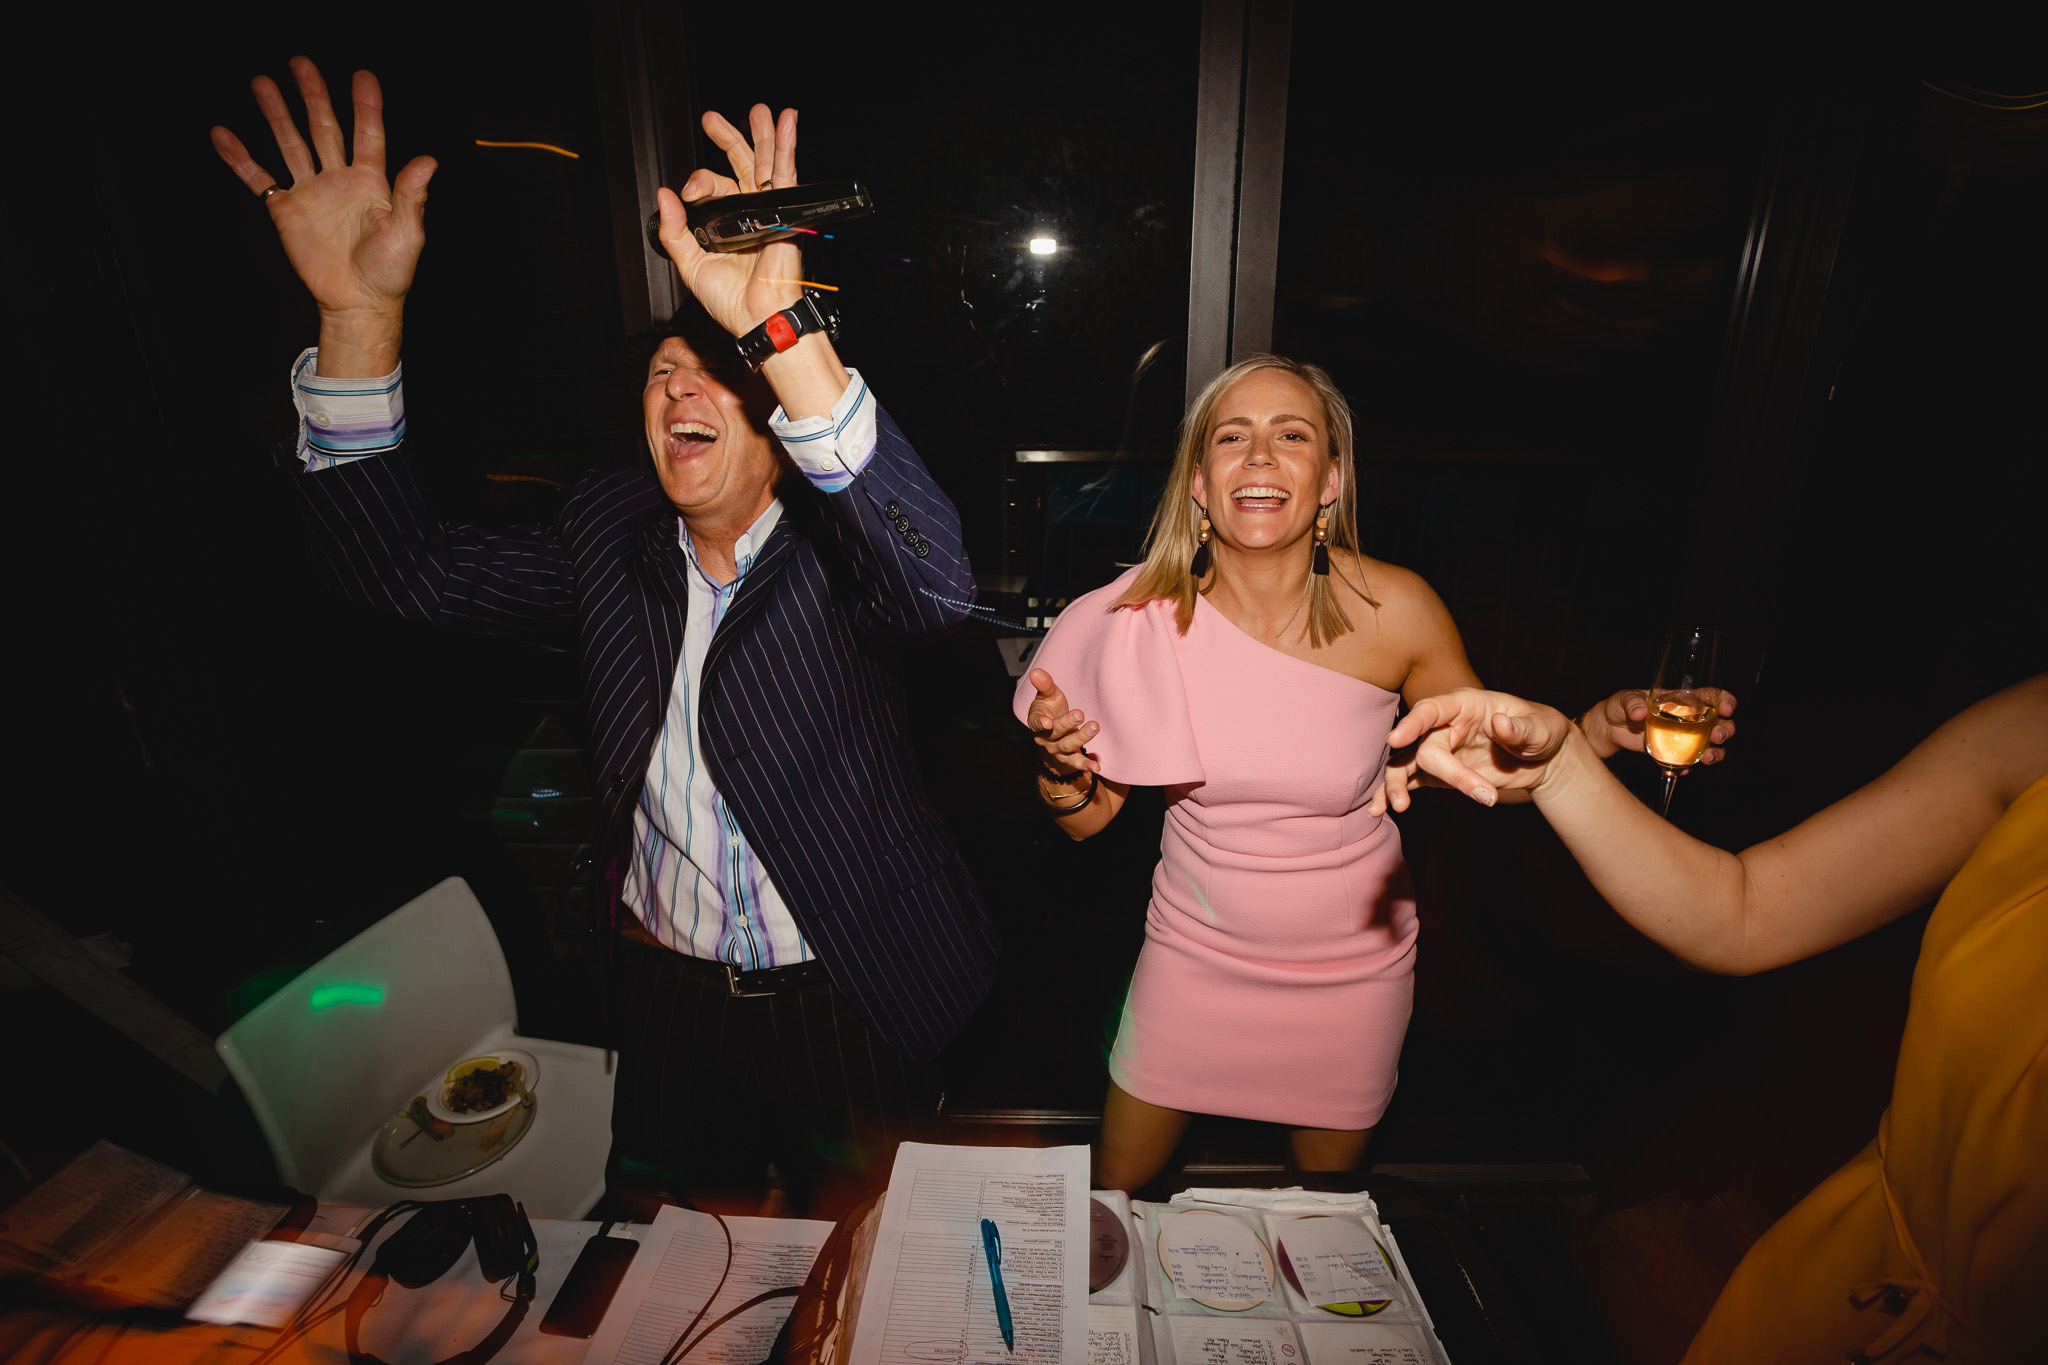 DJ Macca dancing with woman in pink dress while playing music at wedding reception